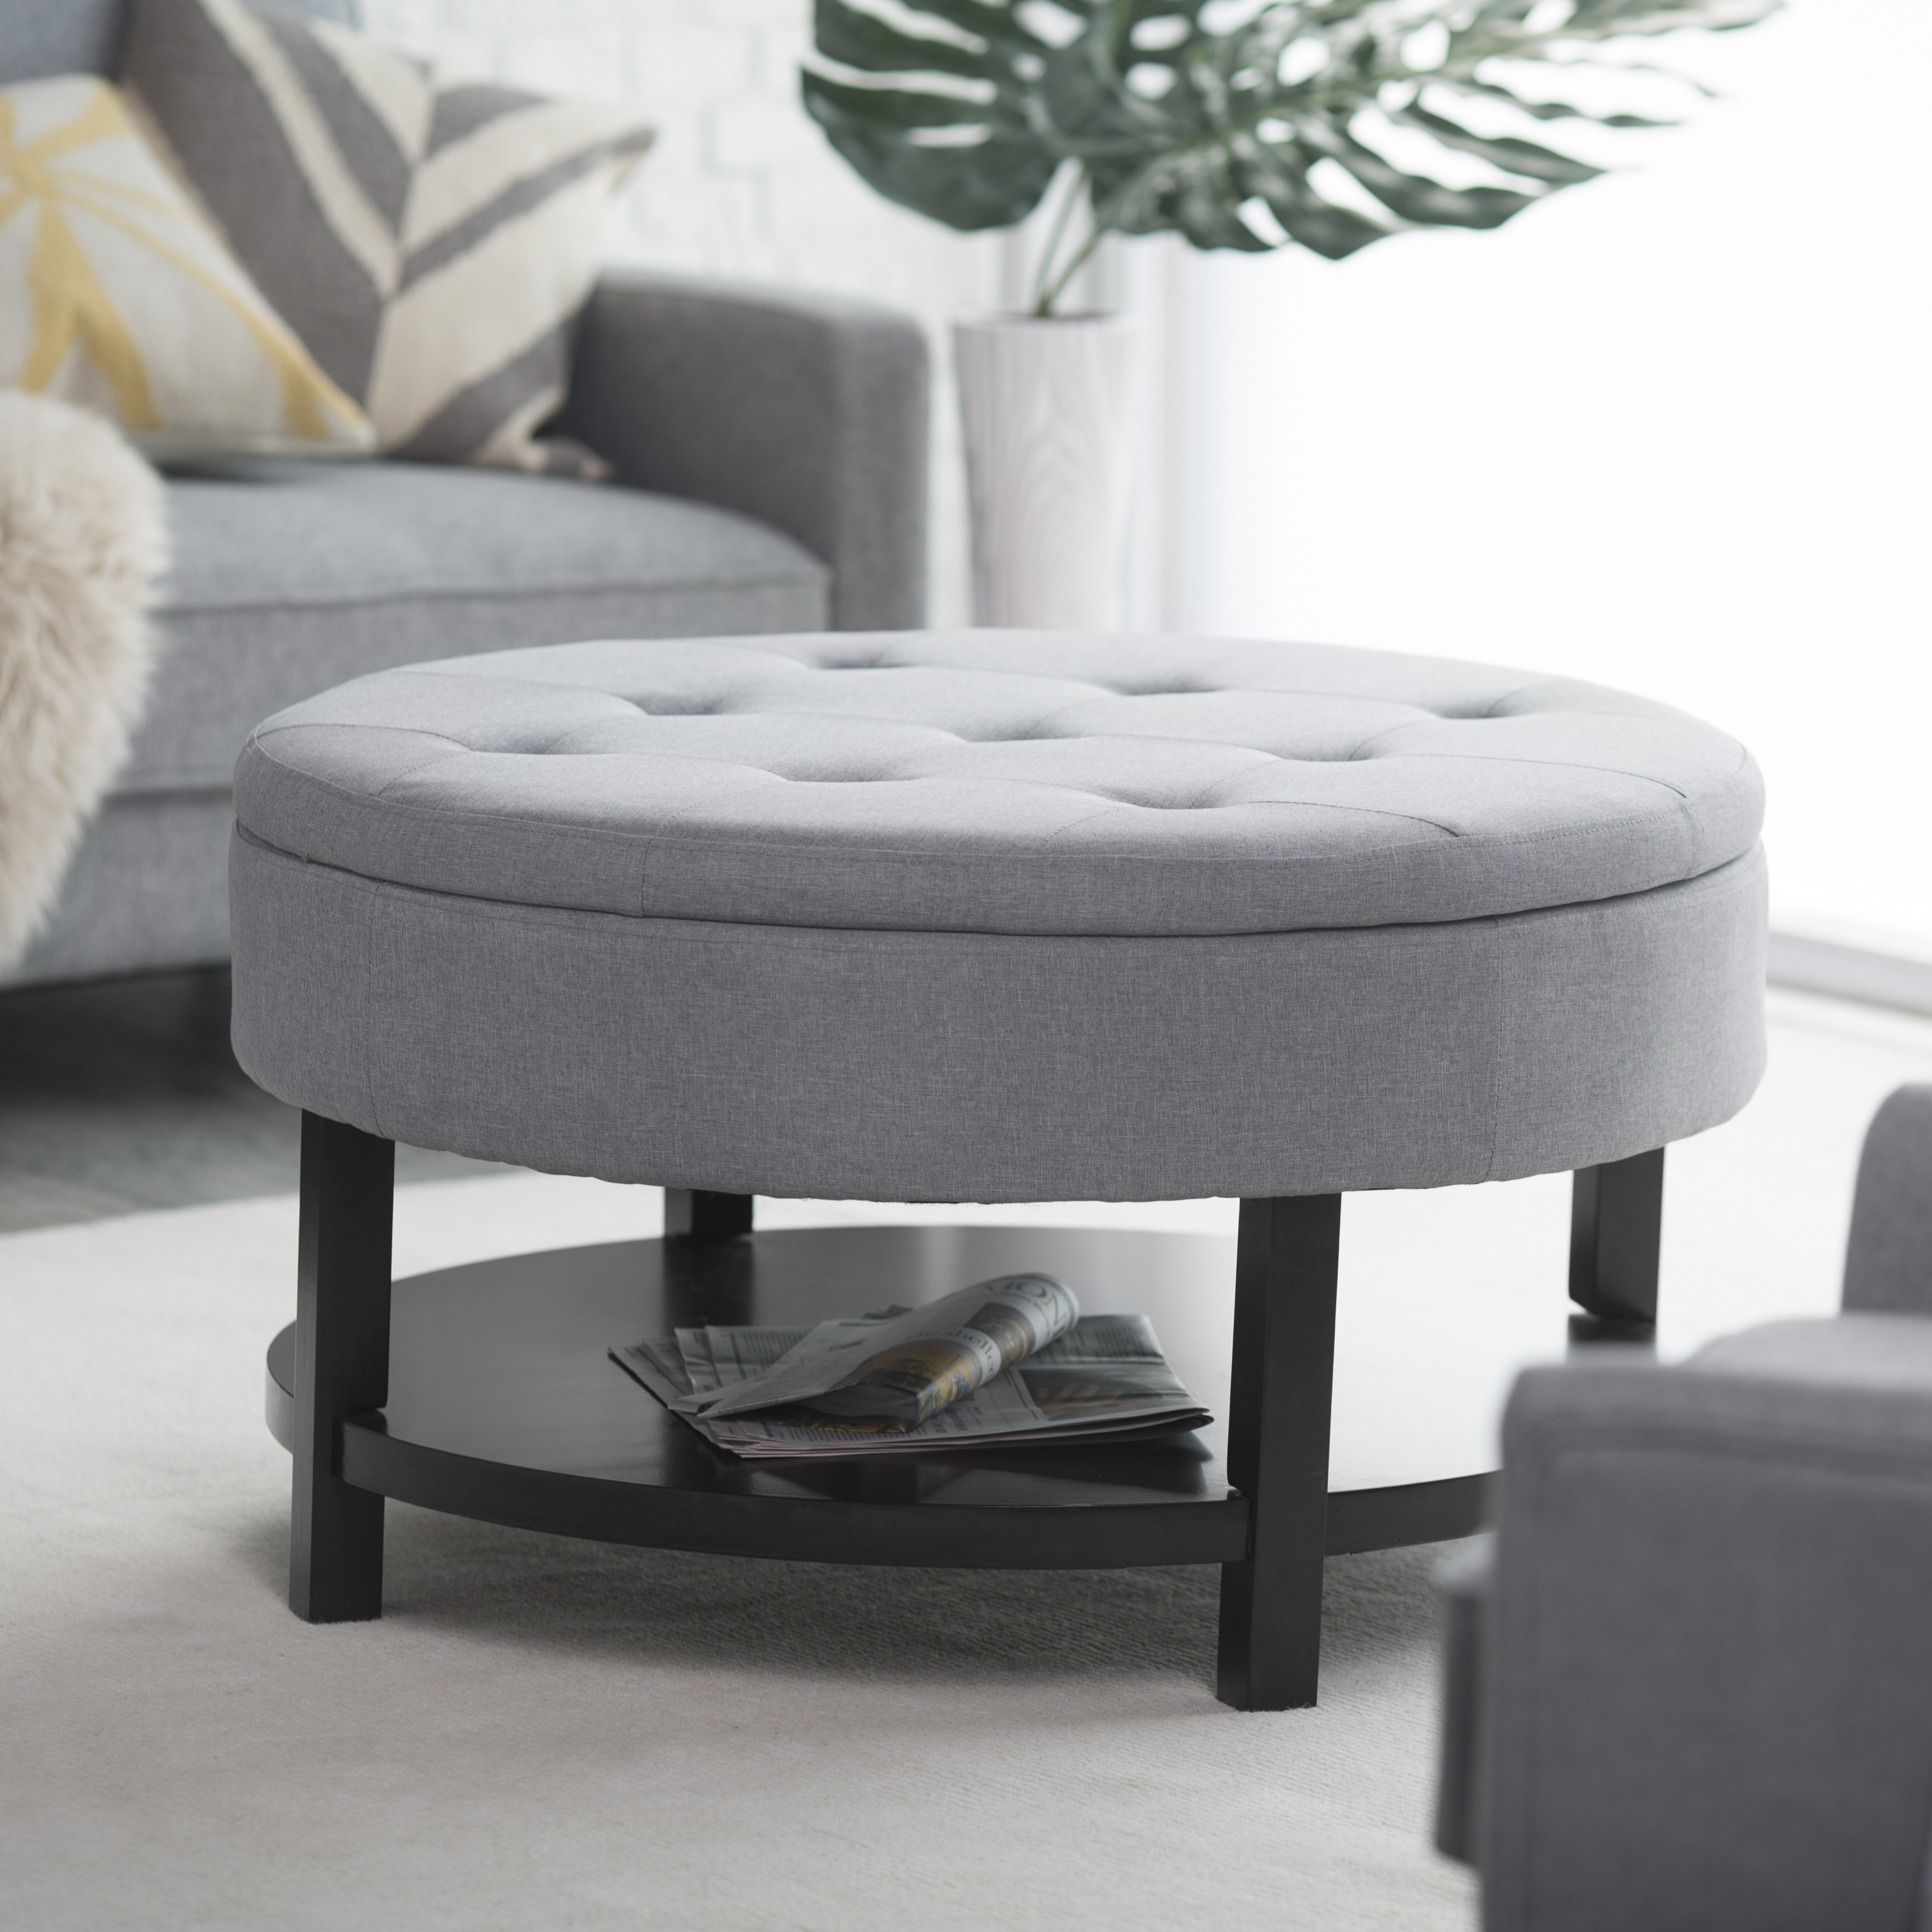 Belham Living Coffee Table Storage Ottoman With Shelf